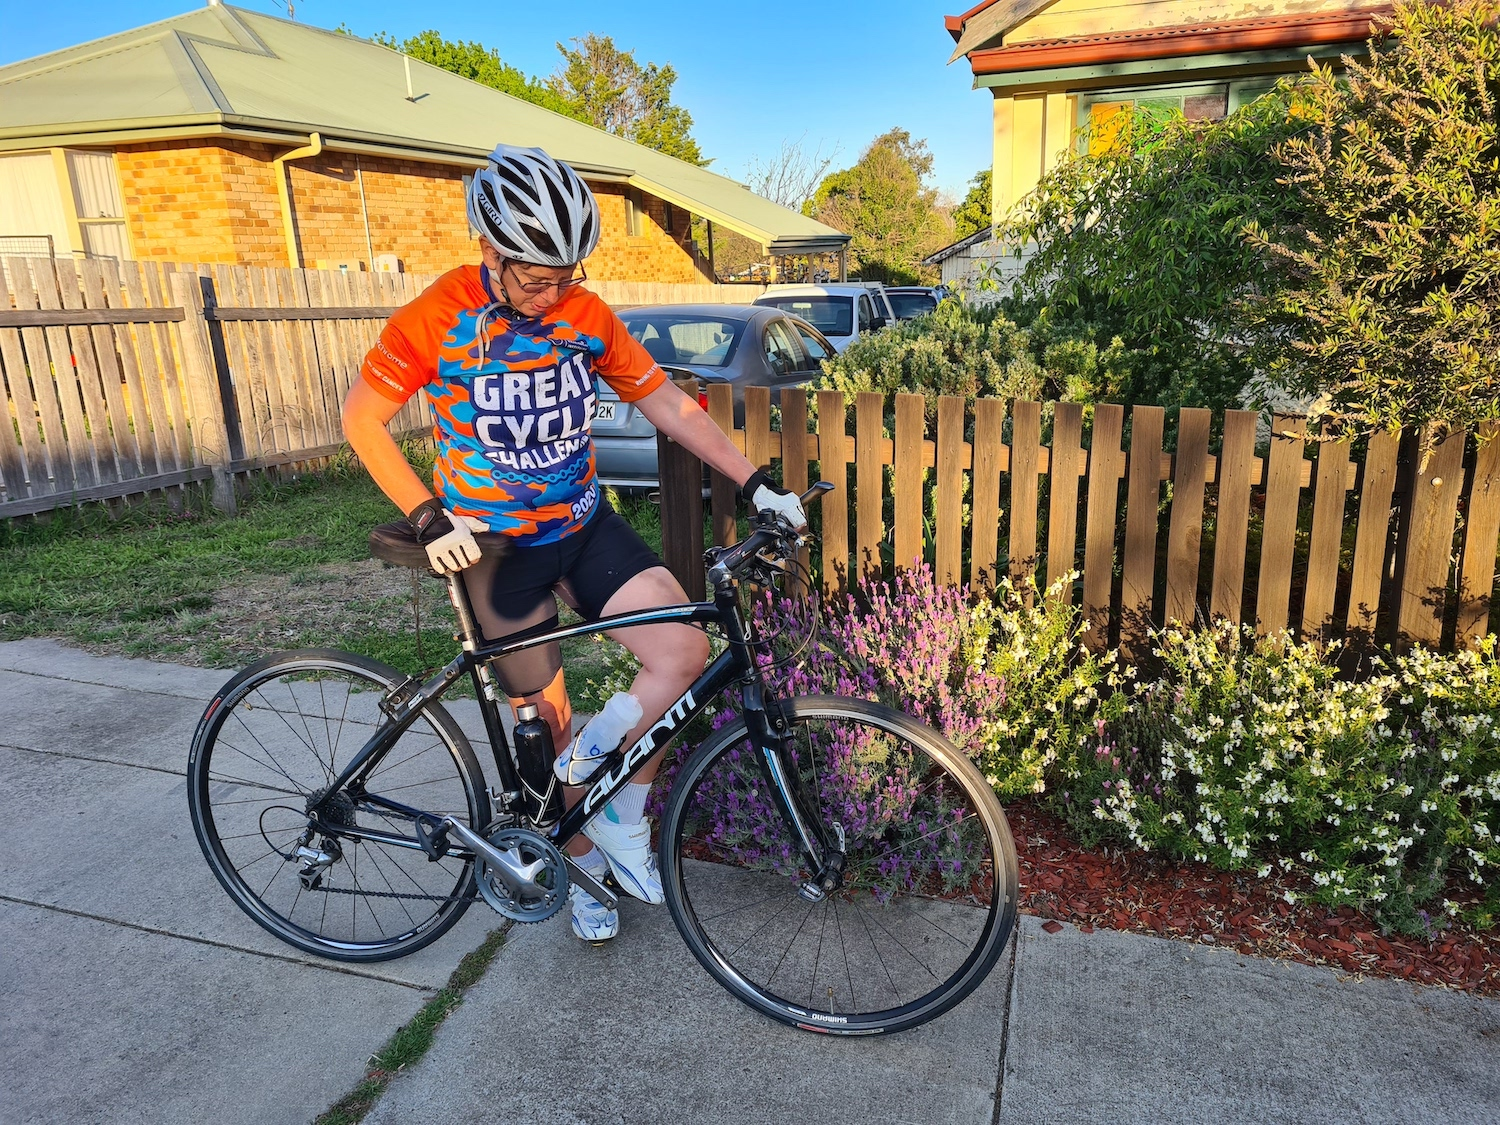 Maria Cotter, UNE, Great Cycle Challenge, fighting children's cancer